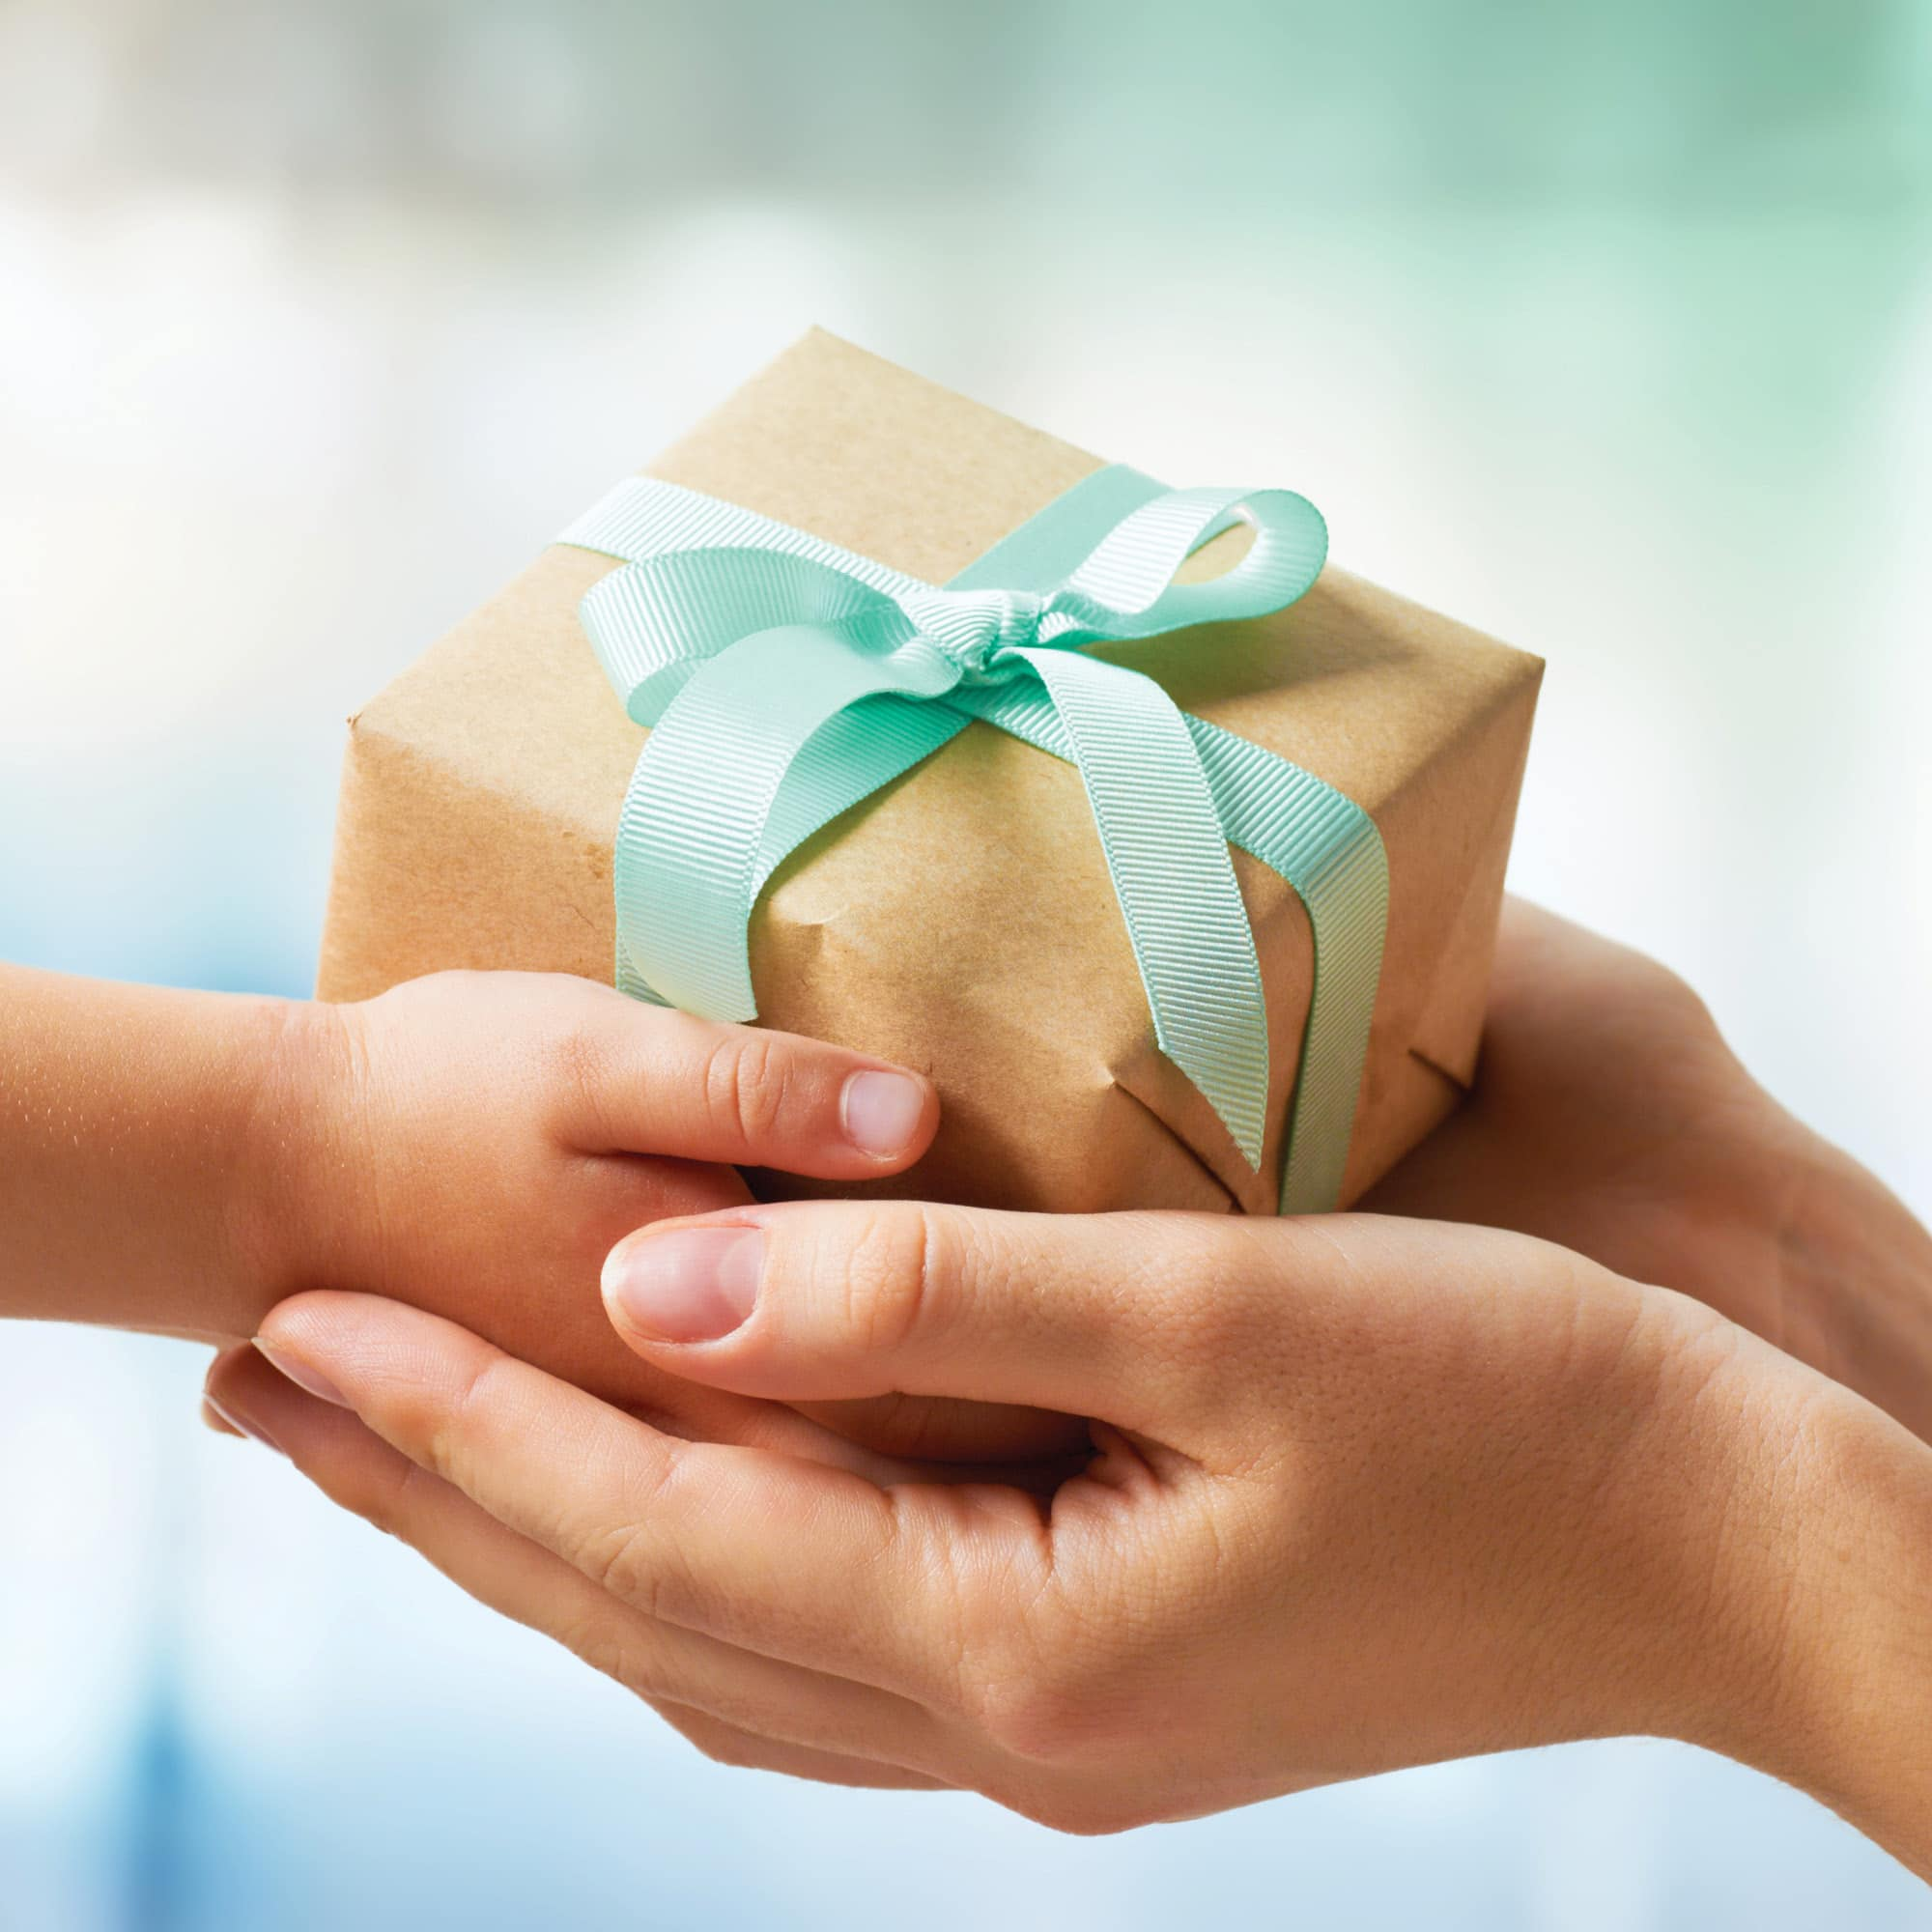 Do you ever feel like buying gifts is a burden instead of a blessing? This touching letter about the power of a simple gift is must-read reminder that it really is the thought that counts!